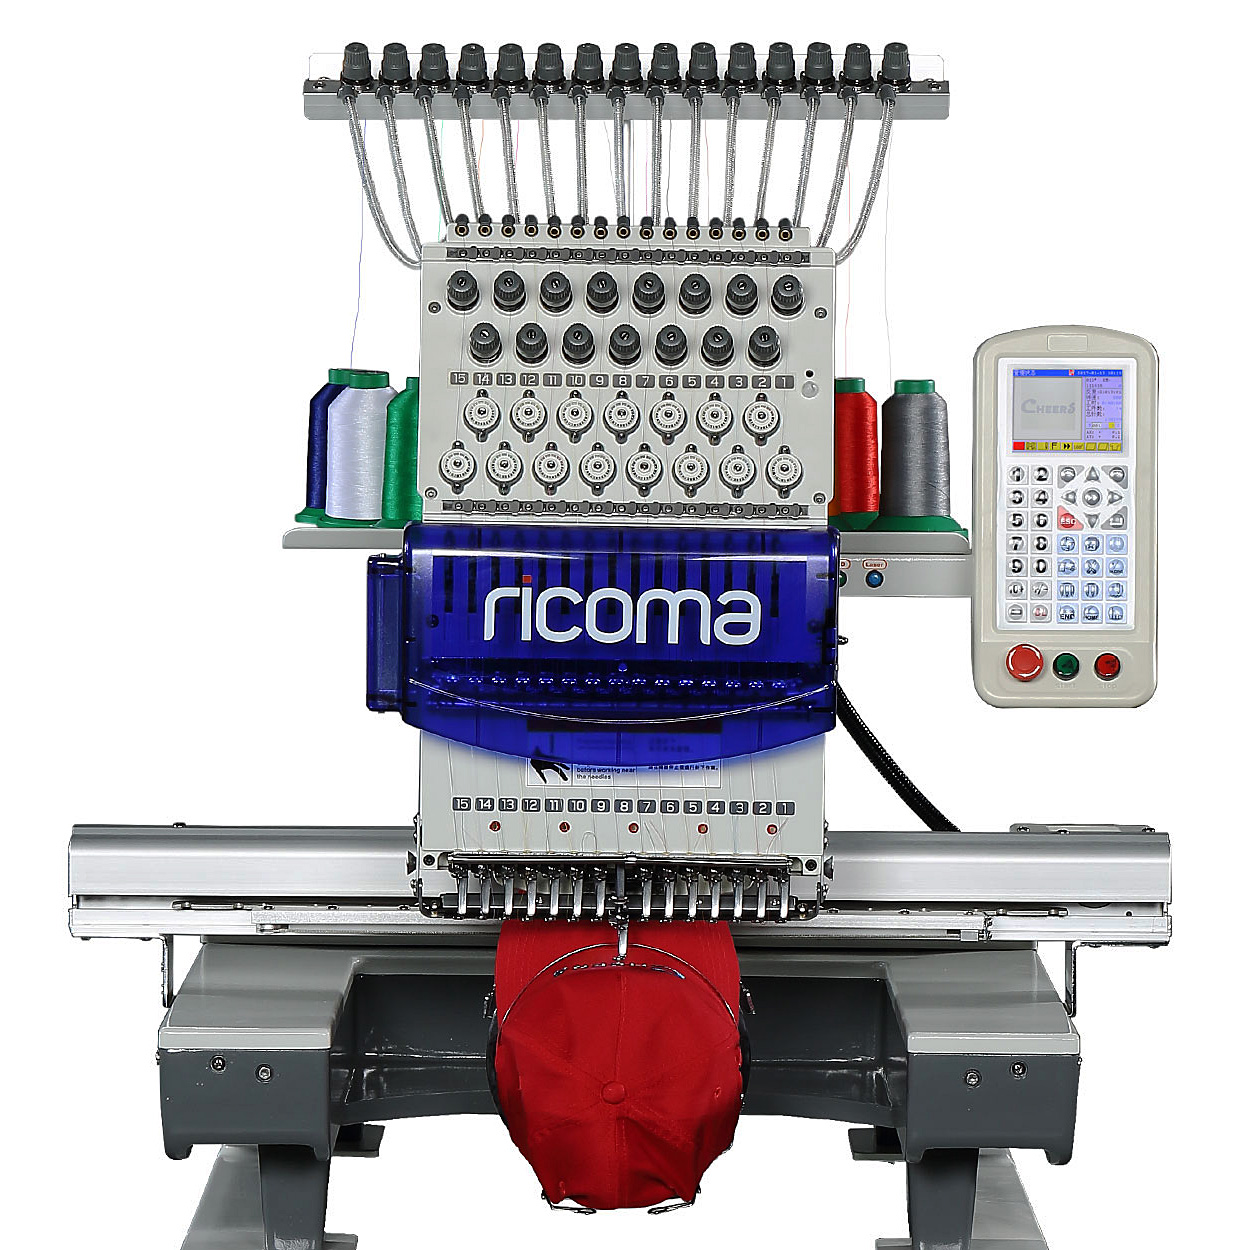 RiCOMA 1501PT 15-Needle Embroidery Machine with Stand and Software